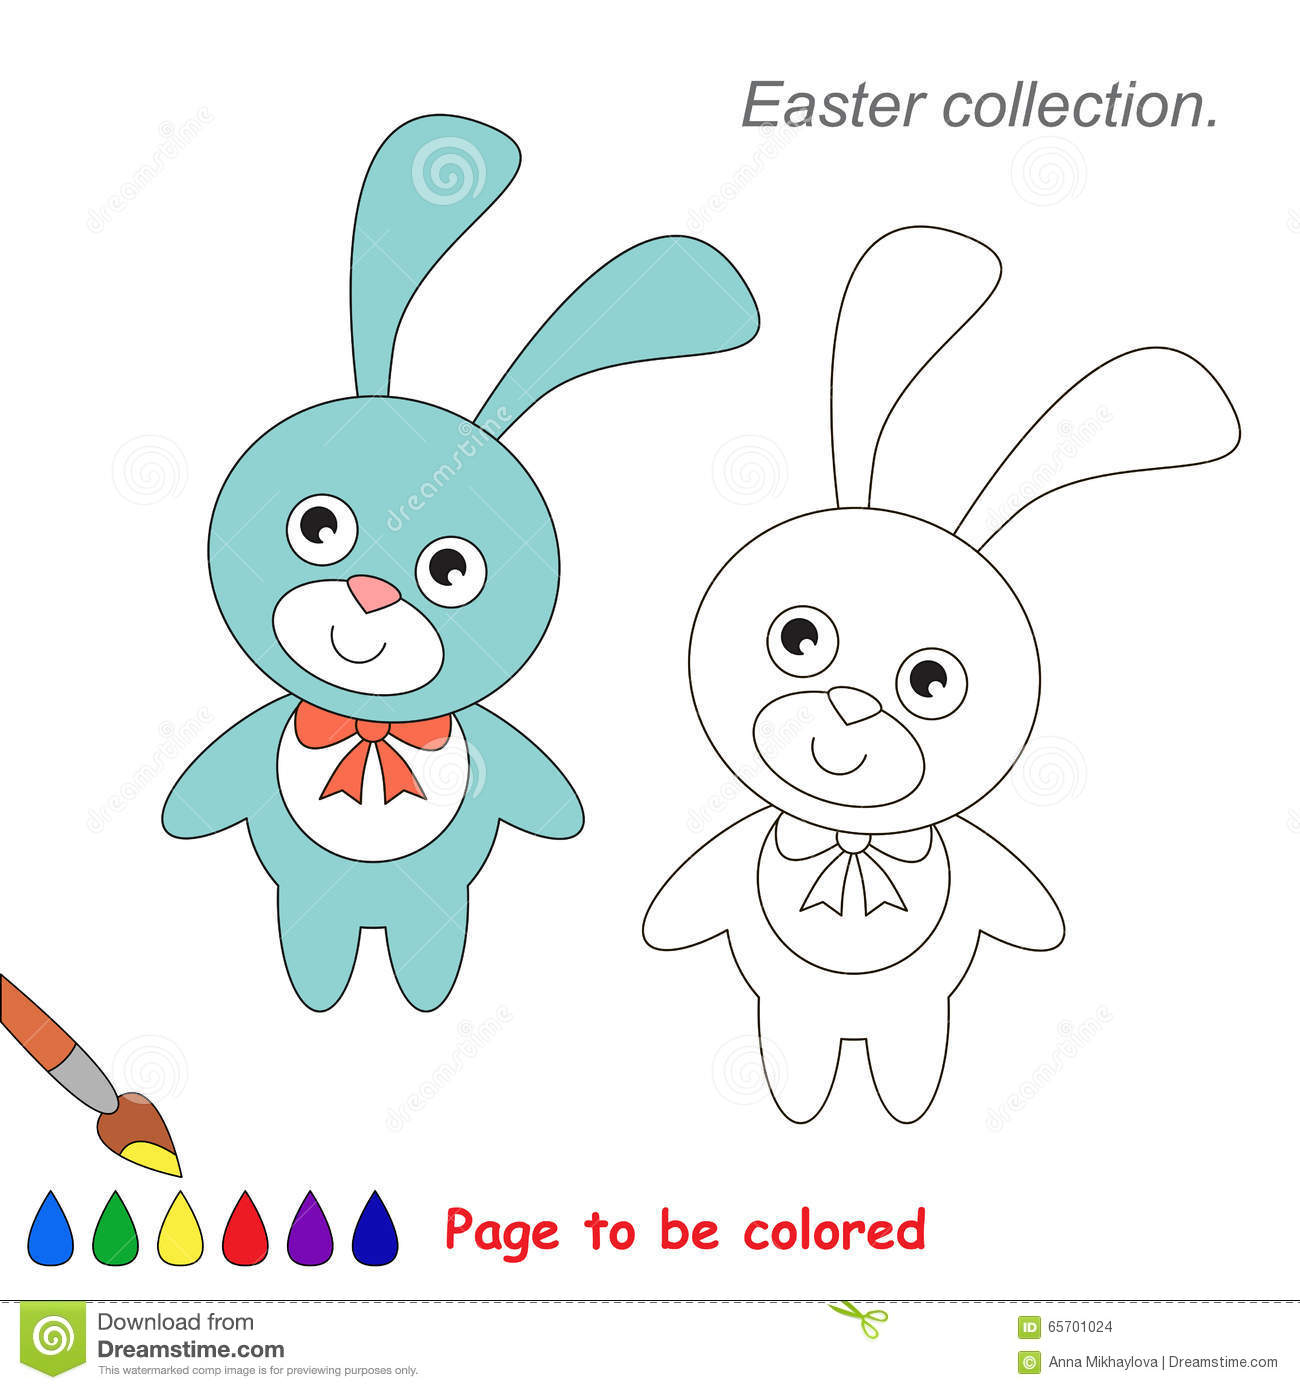 Fuchsia Coloring Page For Kids: Pink And Blue Bunny To Be Colored. Game For Kids. Stock